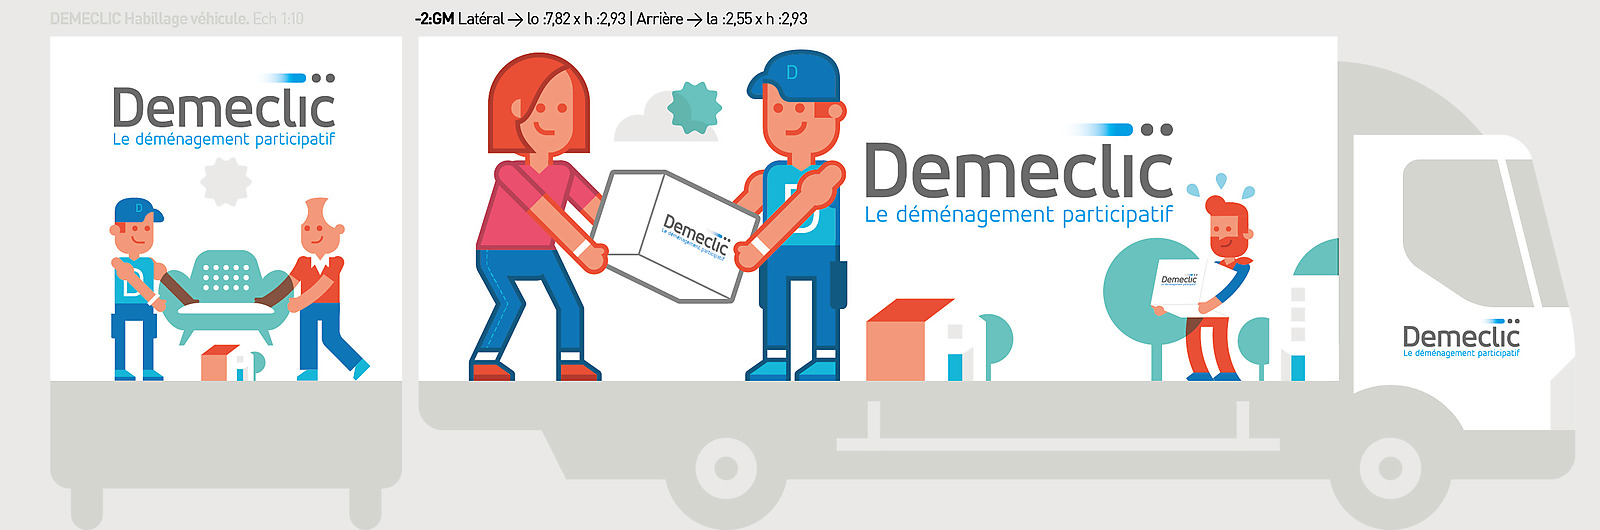 demeclic-vehicules-gm1